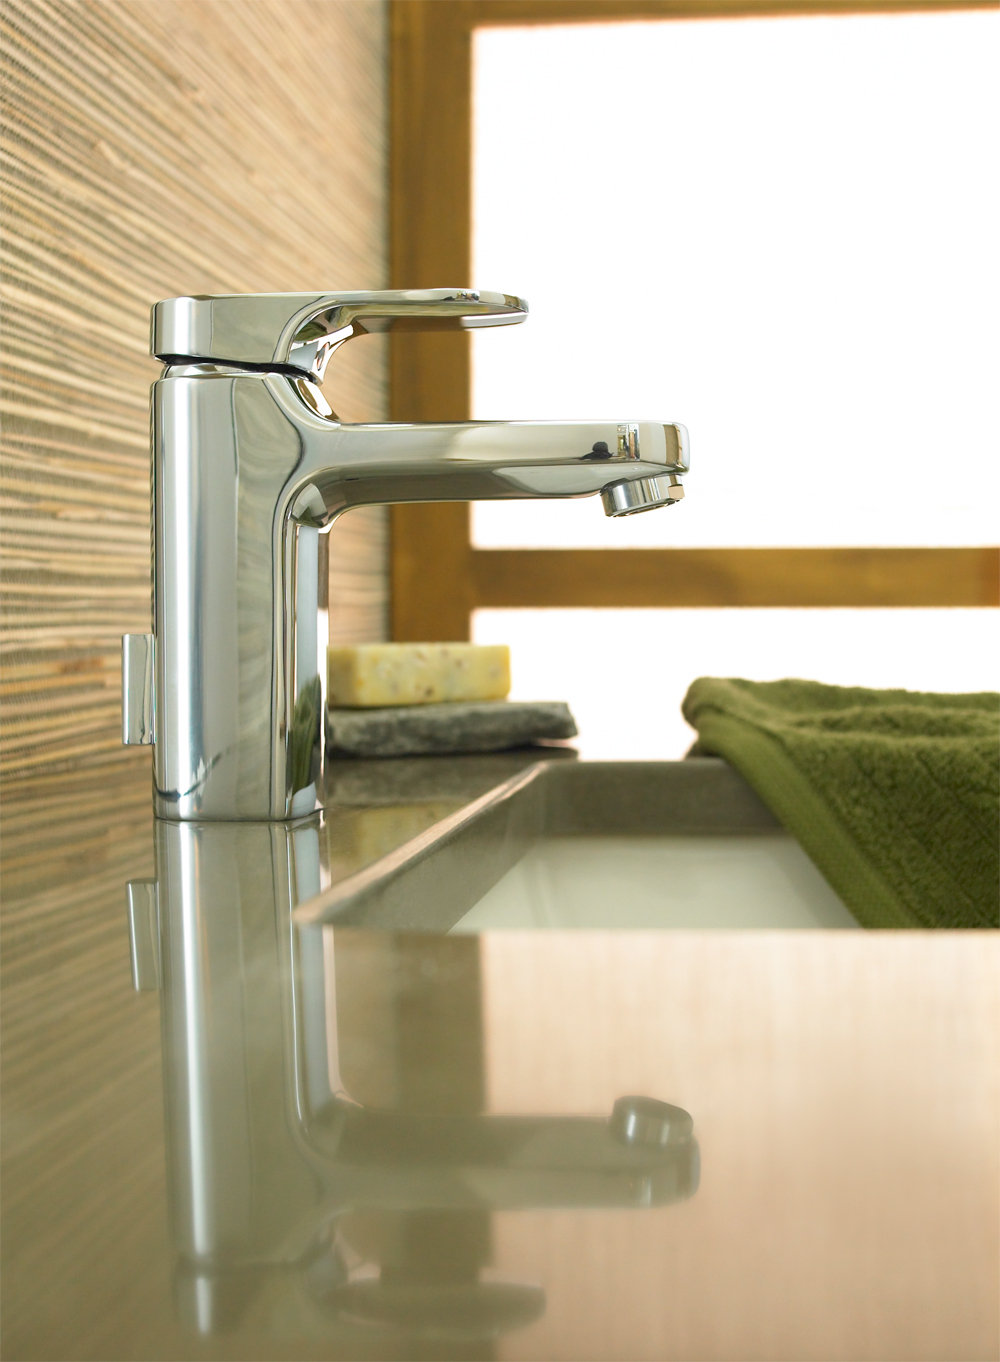 Give Your Bathroom An Upscale Look That Will Have Your Guests Talking.